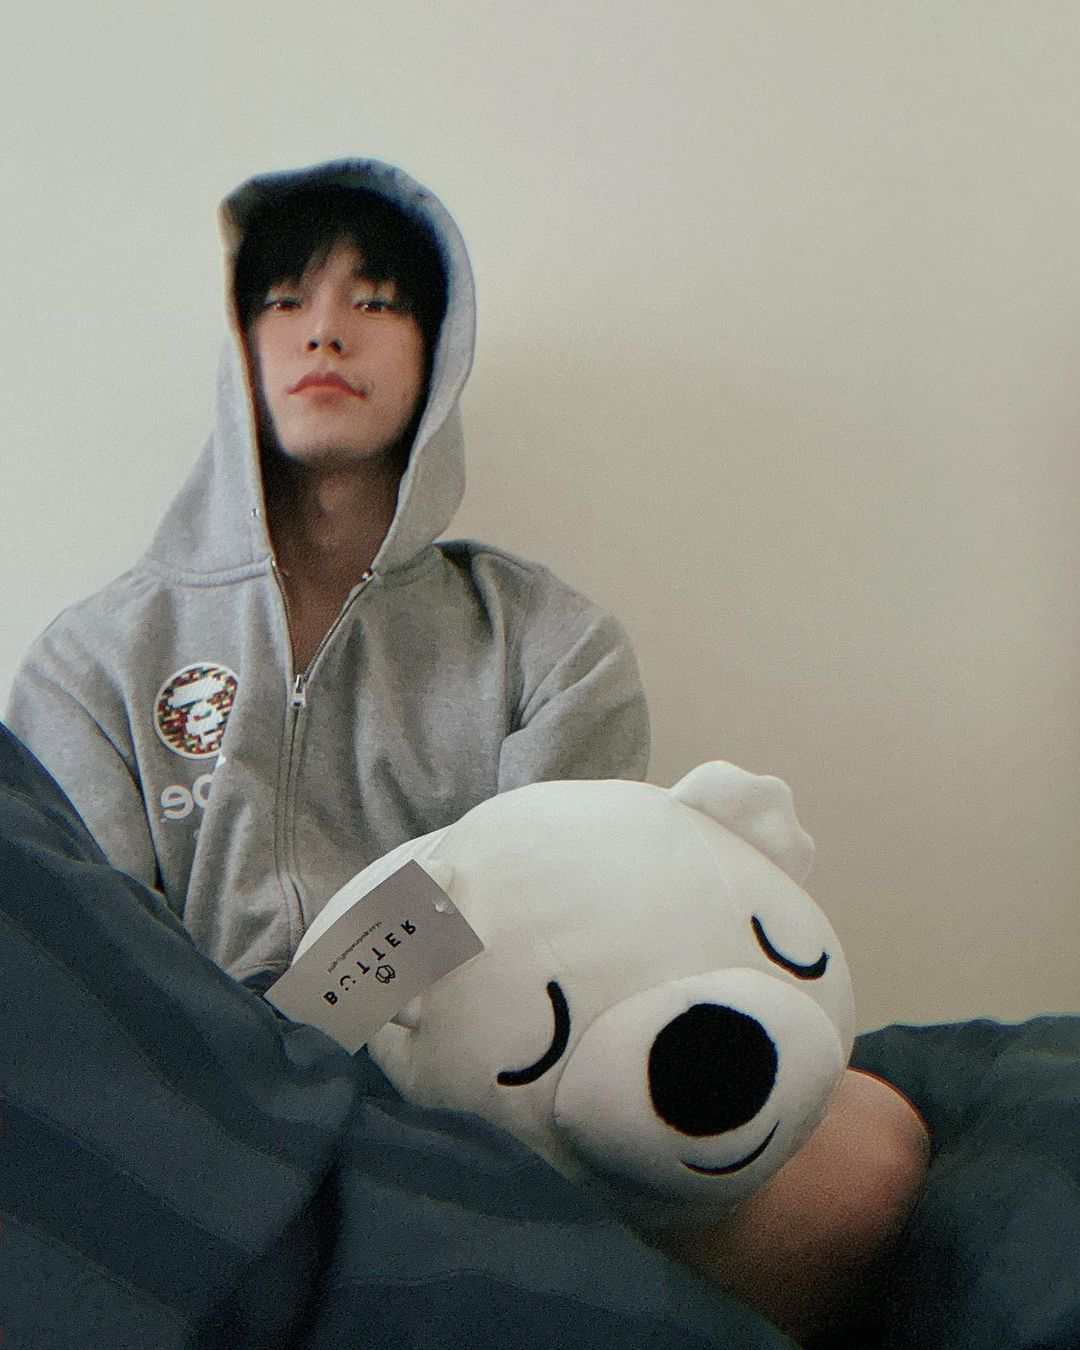 doyoung2